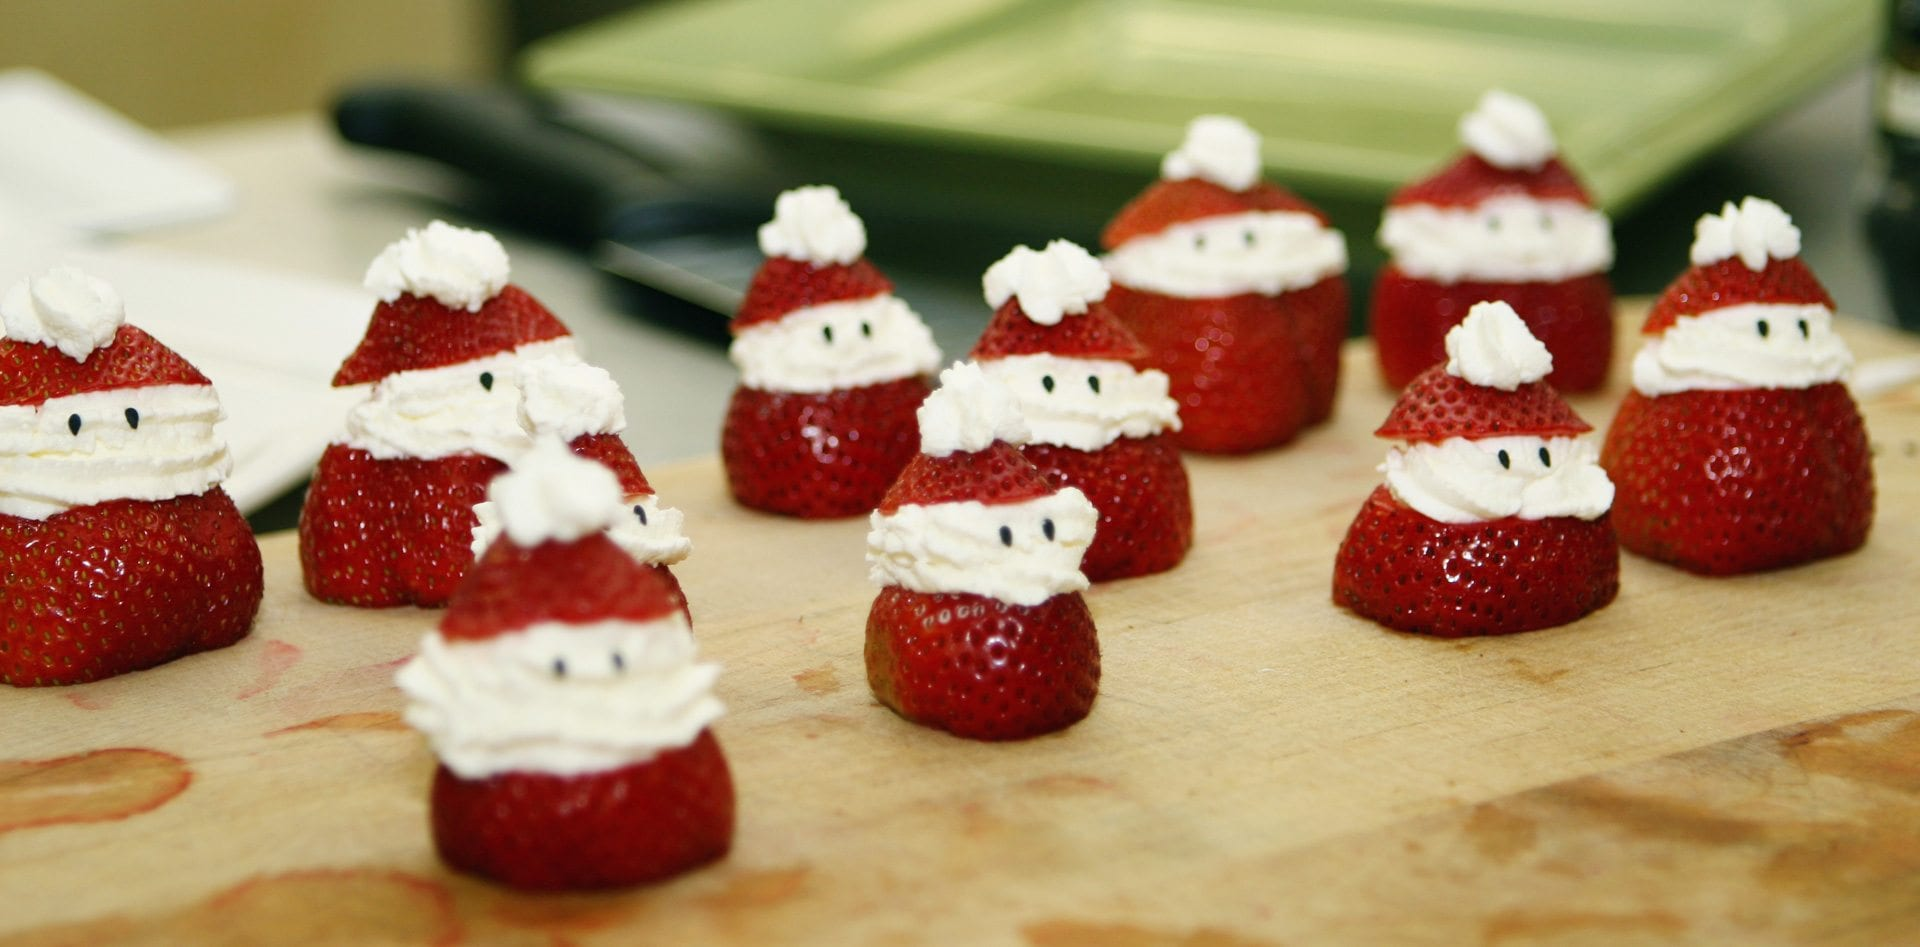 Strawberry-Santa-Claus